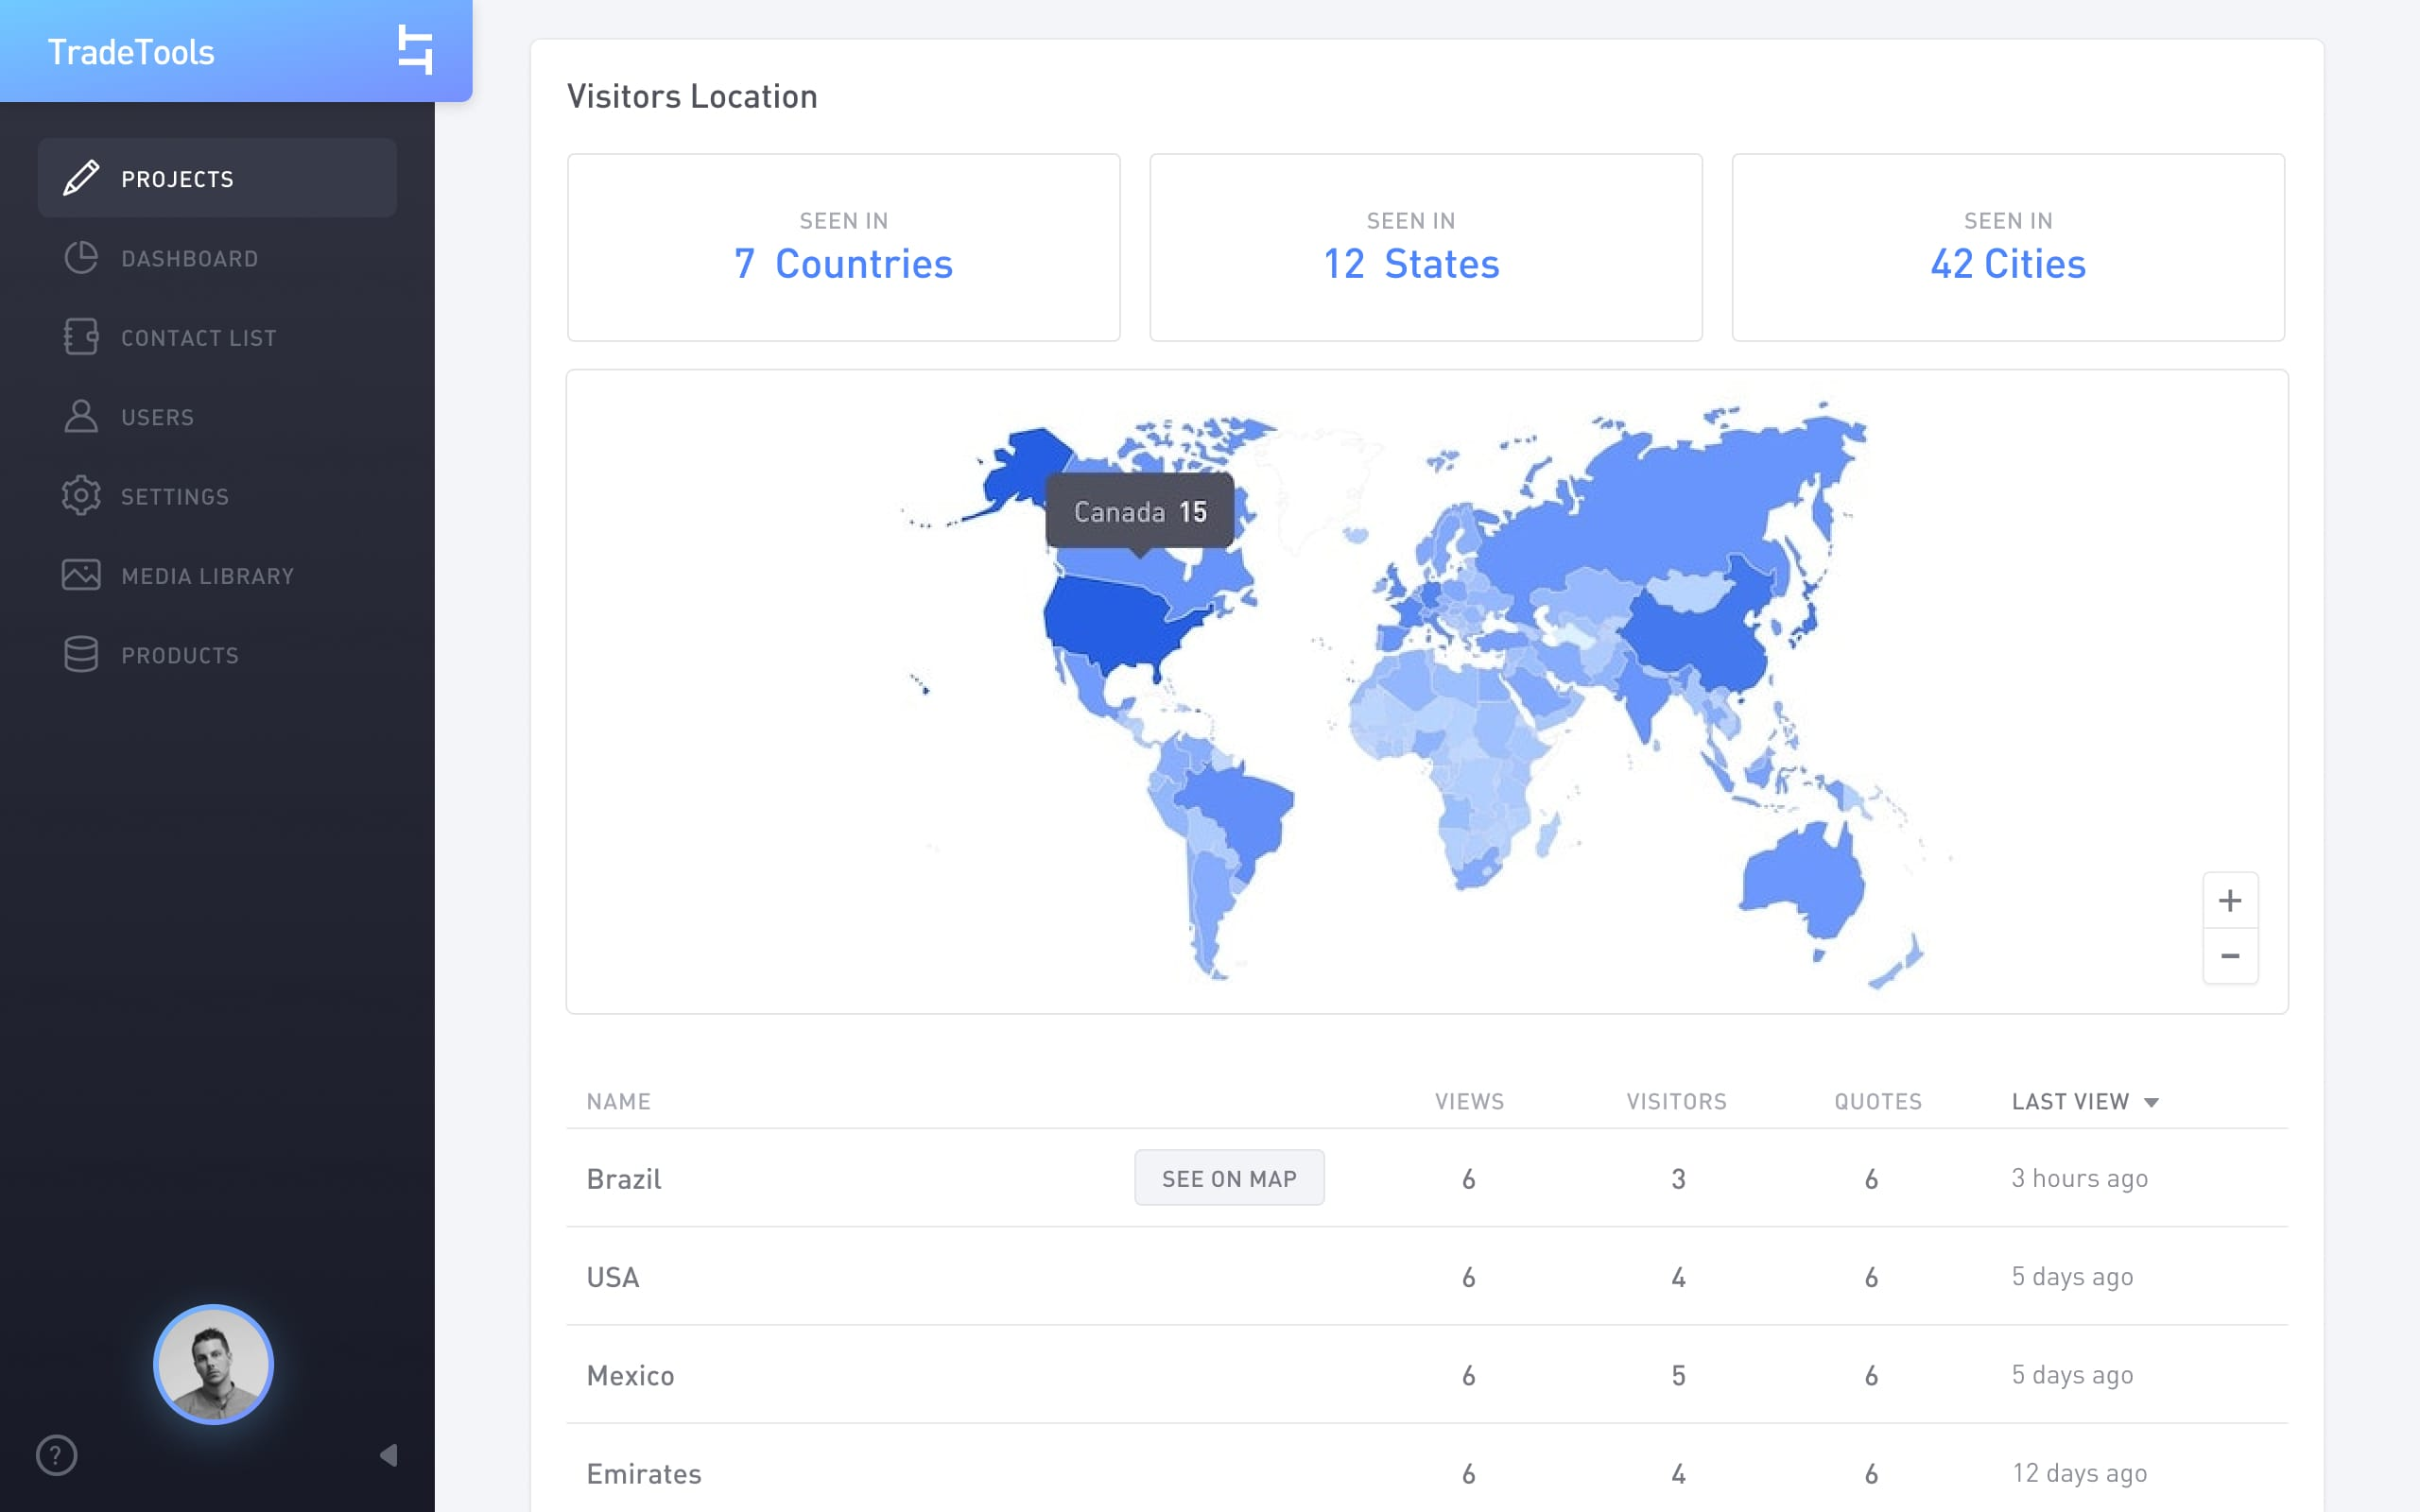 Browser screen with a map showing how many visitors came from each location.